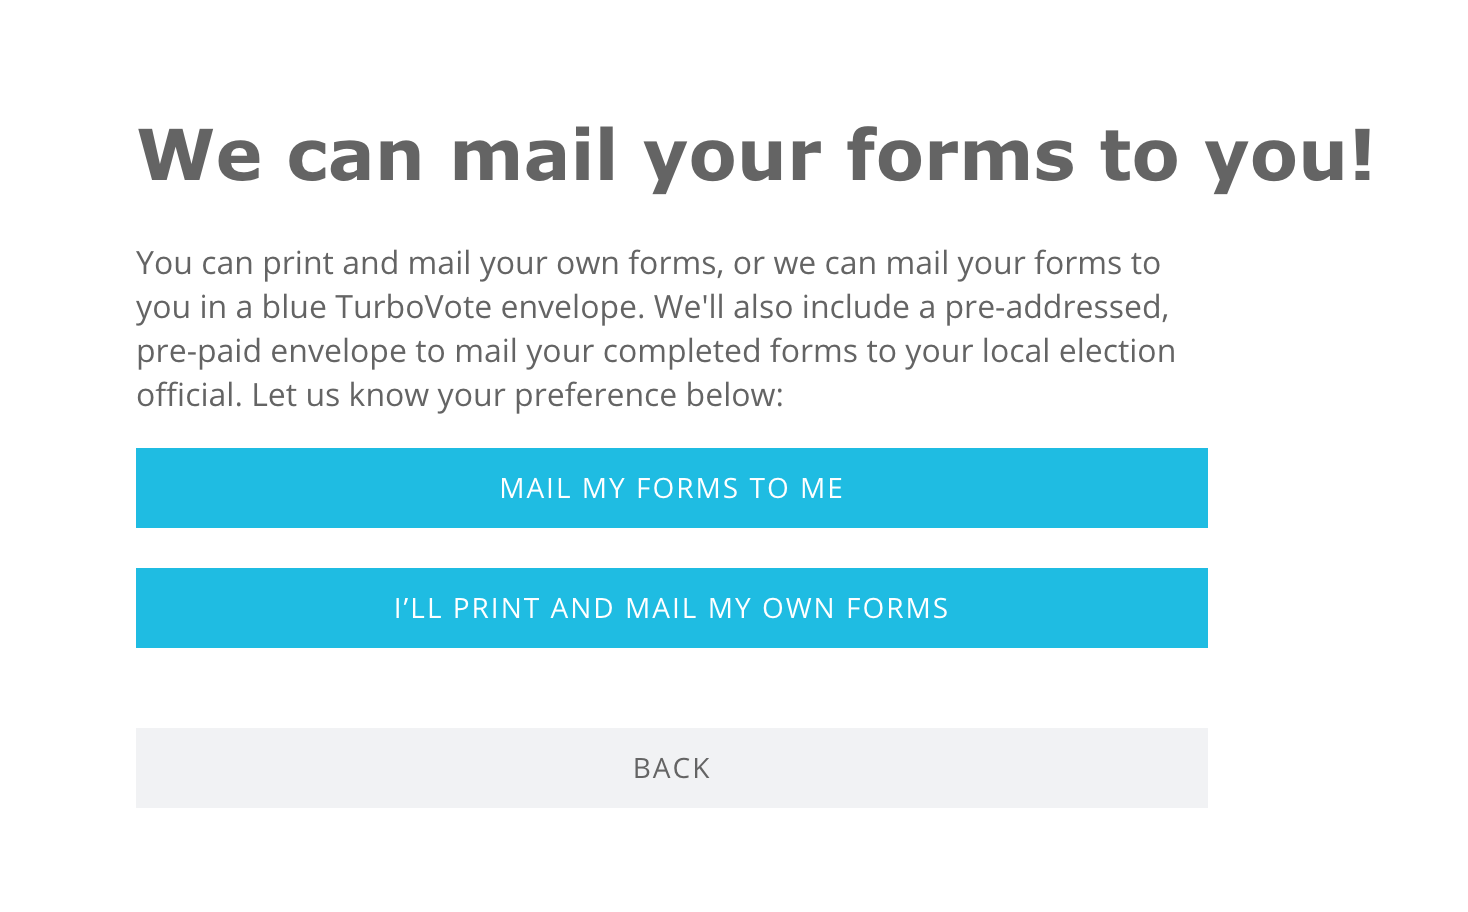 """Want TurboVote to send you your forms? - Choose """"MAIL MY FORMS TO ME"""" on the penultimate page of your site (right)."""